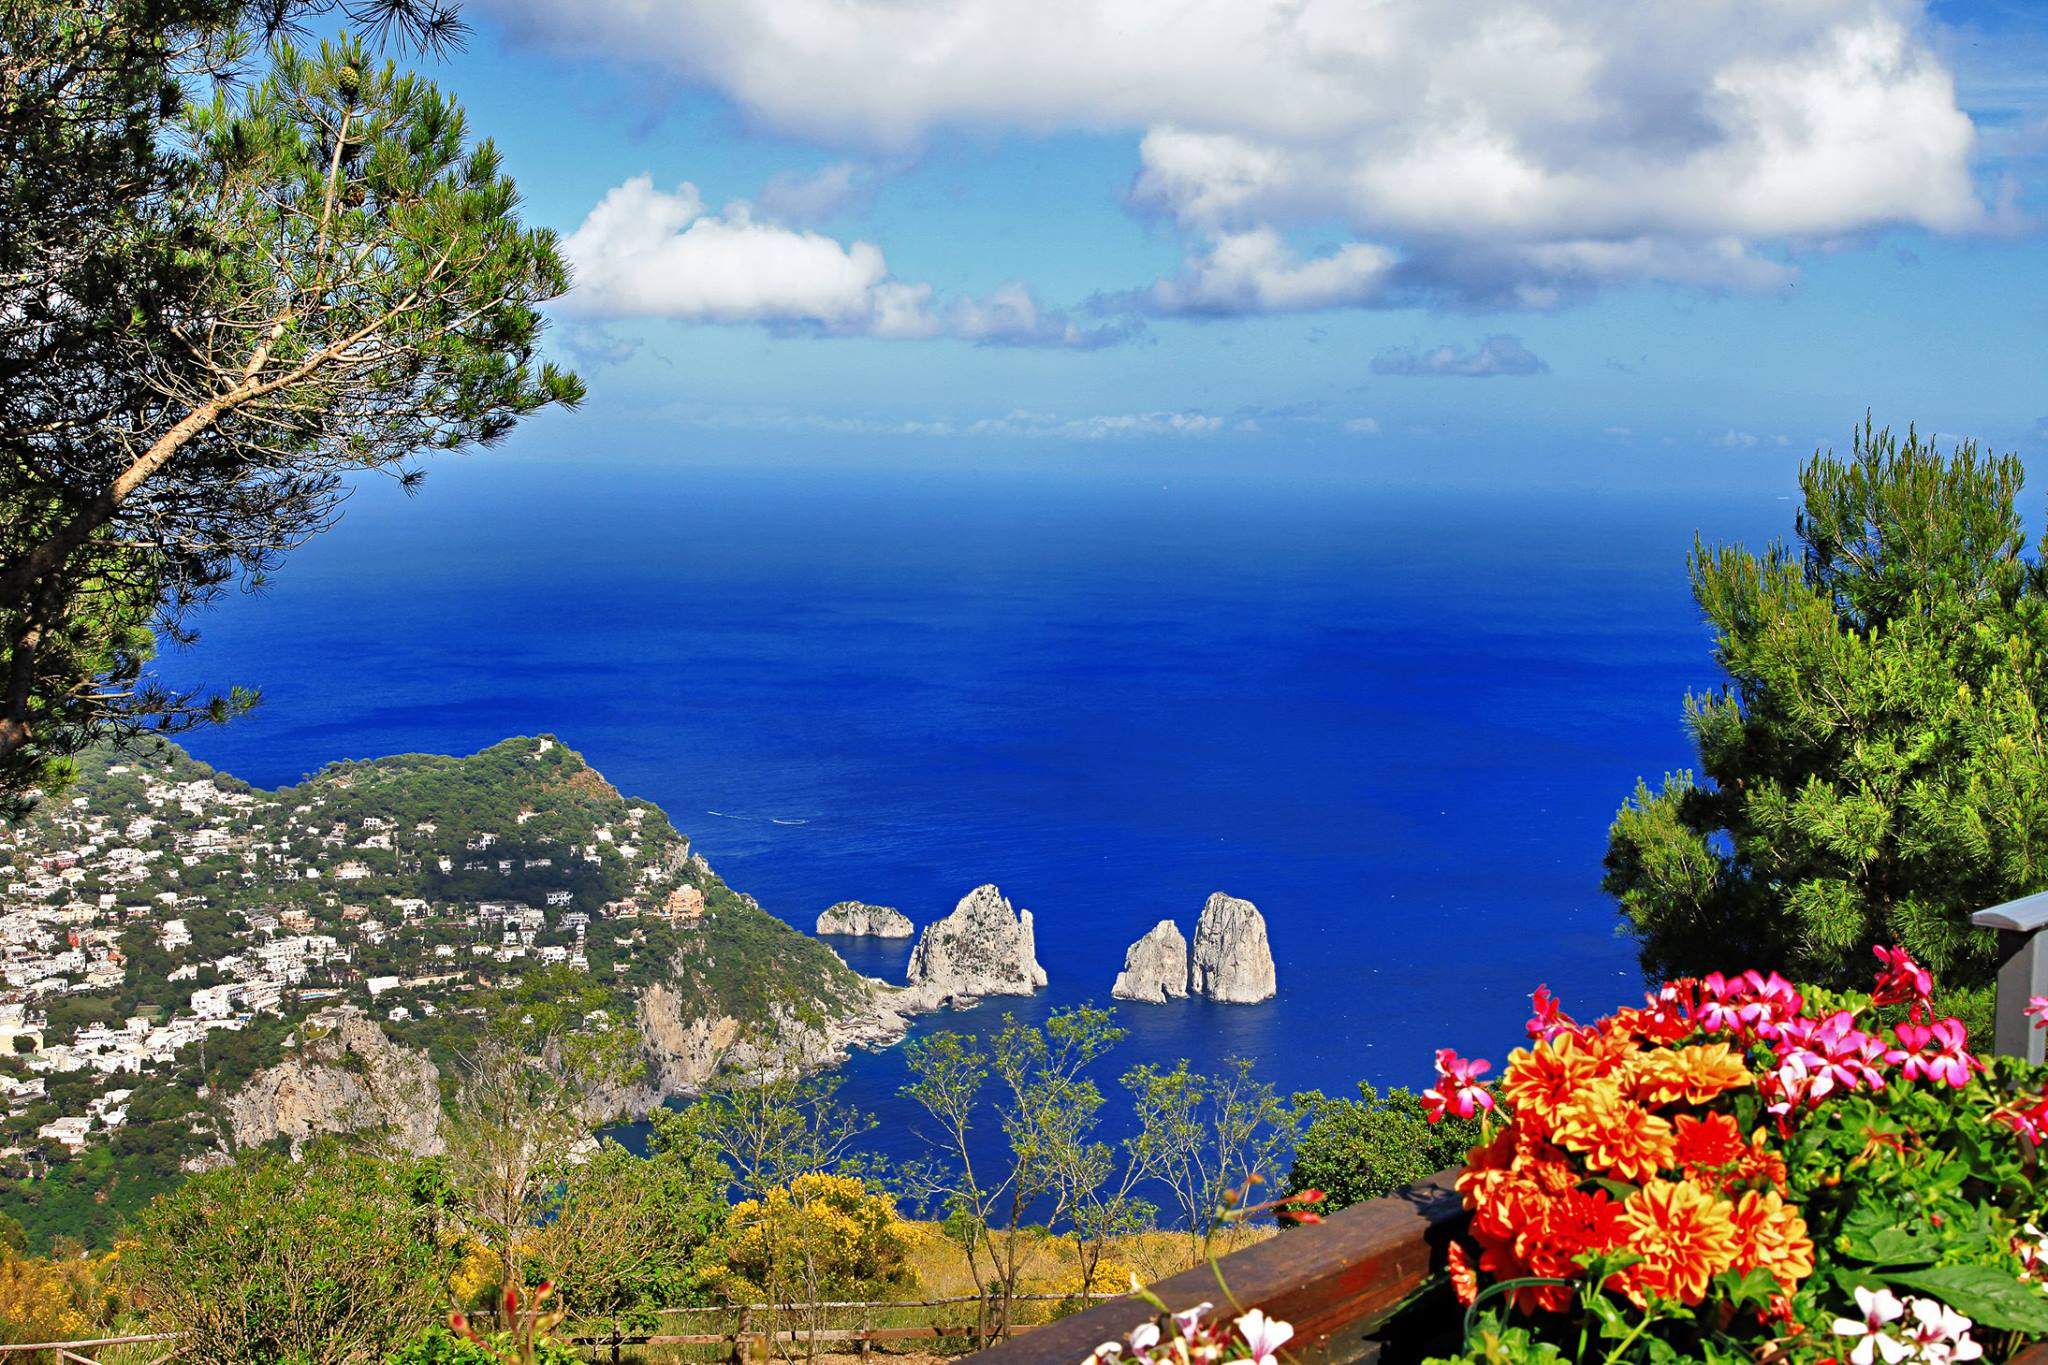 Views from the August Gardens of Capri